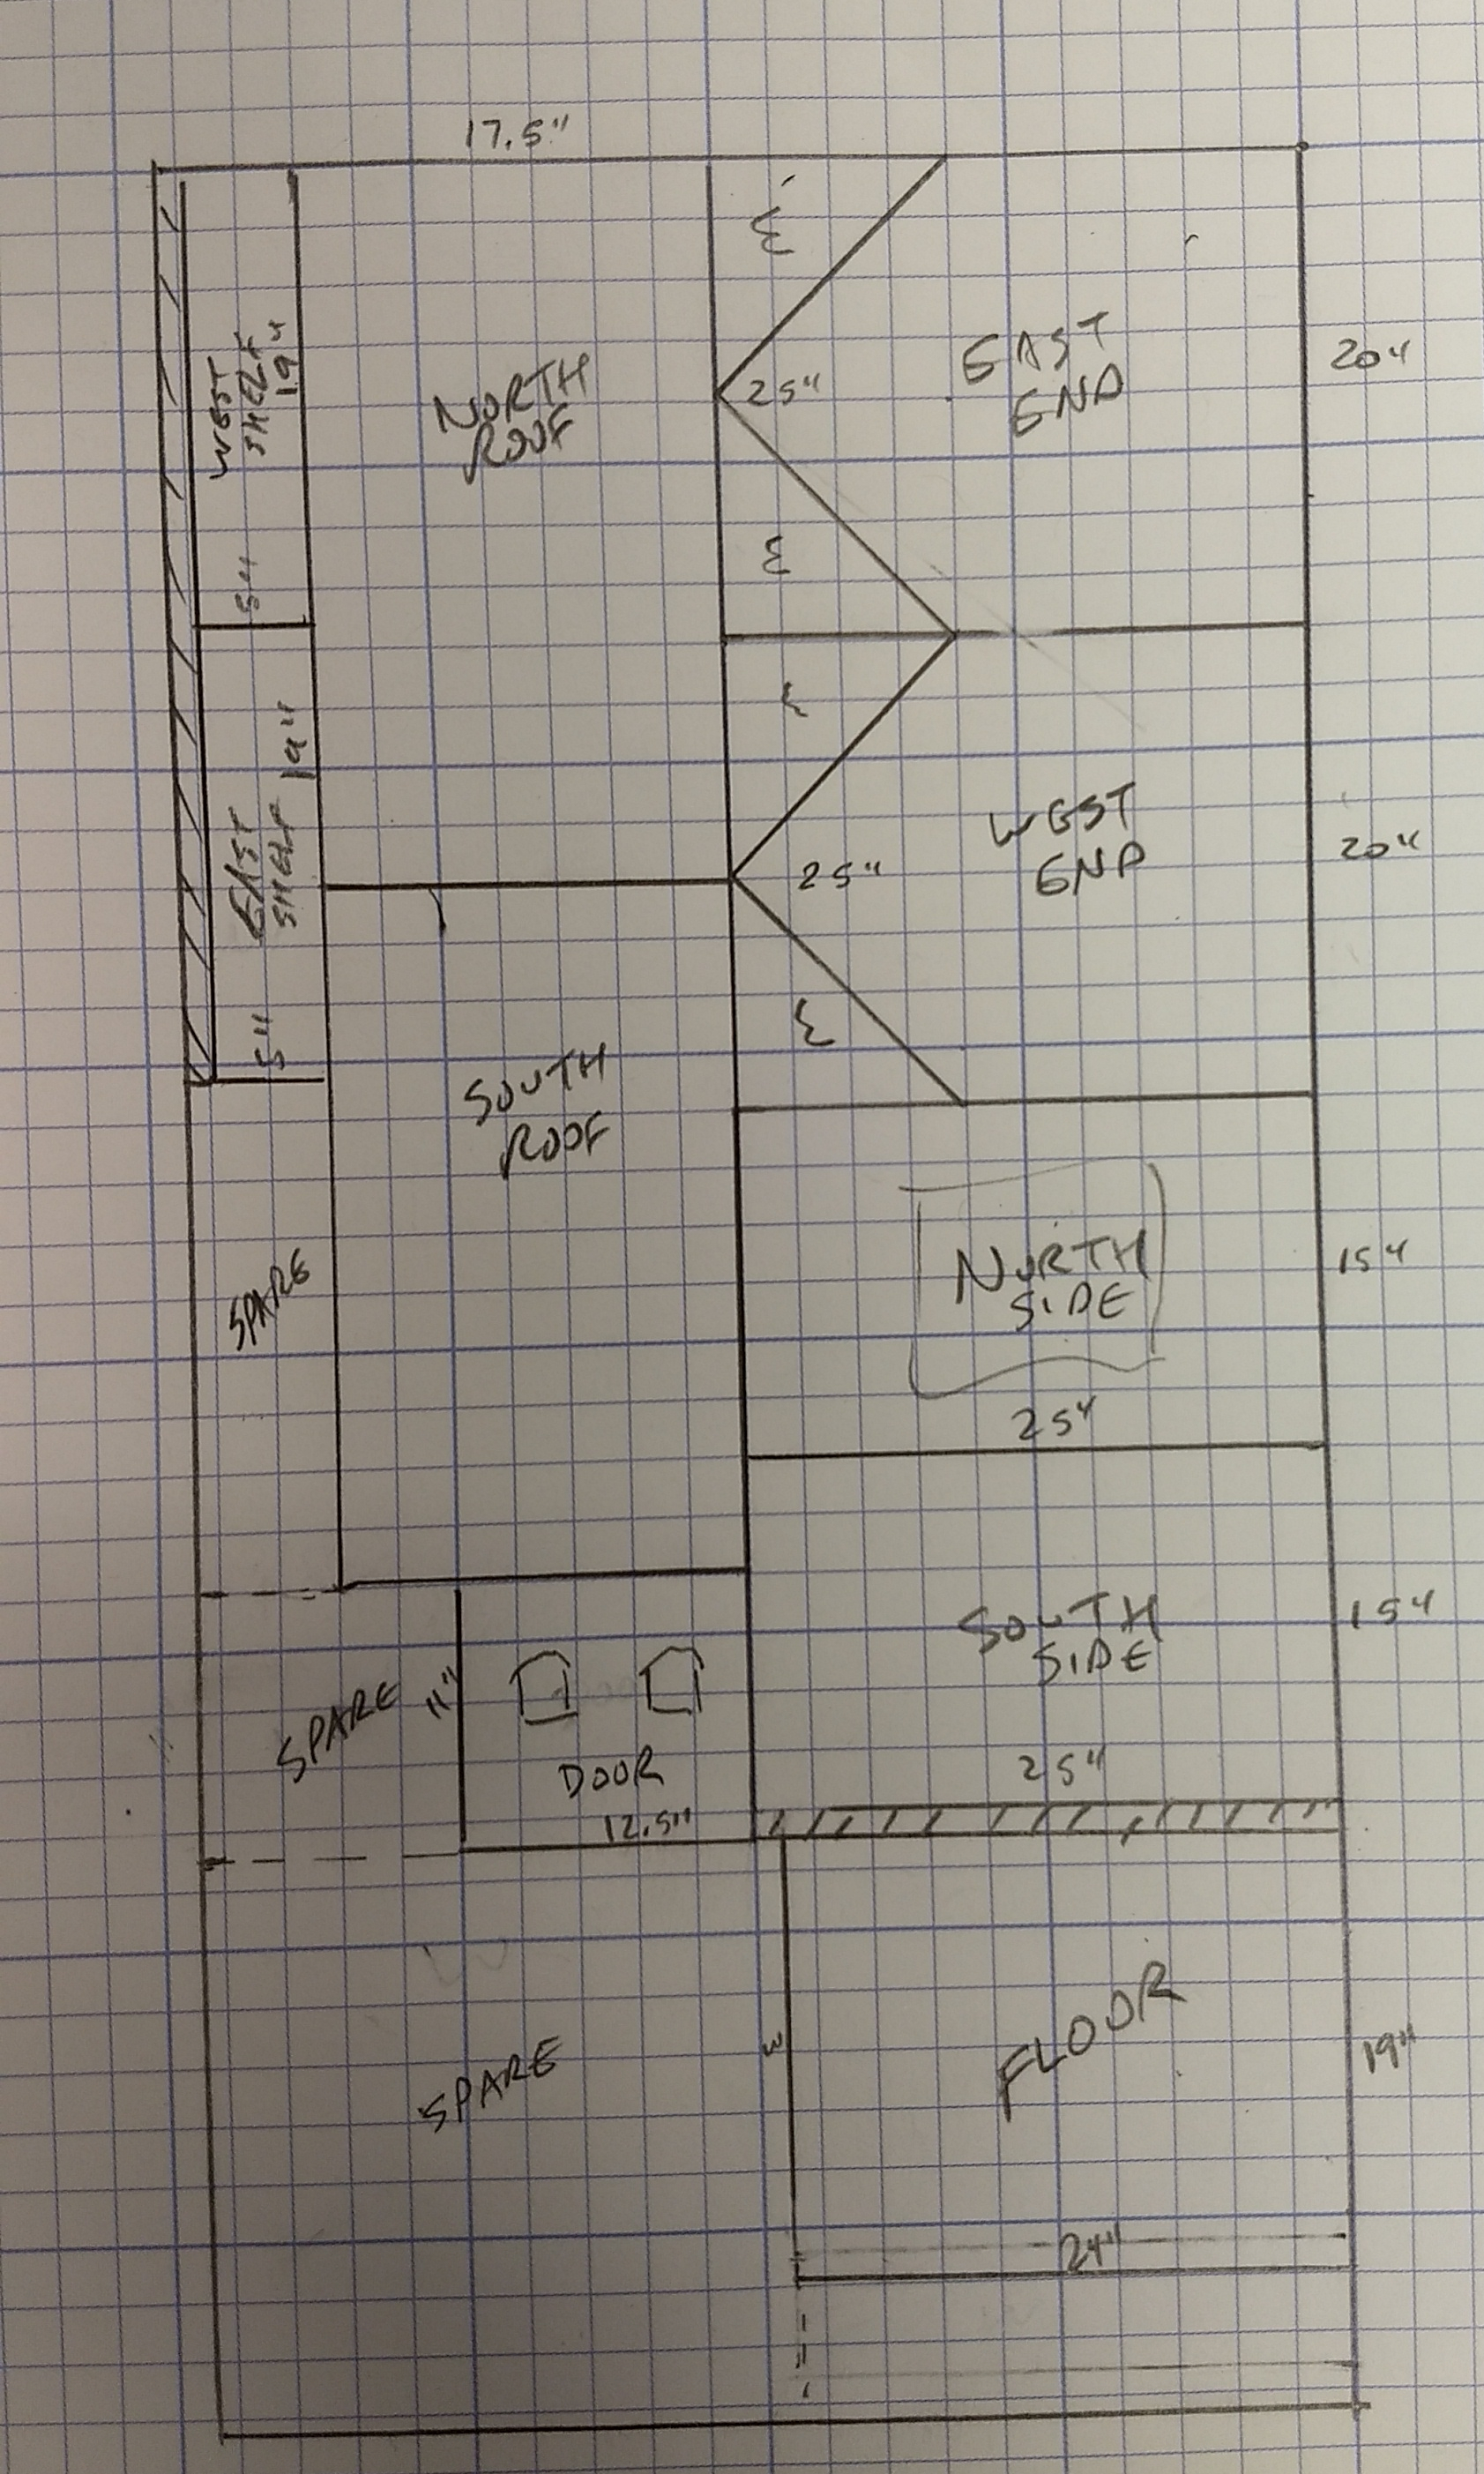 A preliminary sketch of layout for cutting components from a single 4' x 8' piece of plywood.